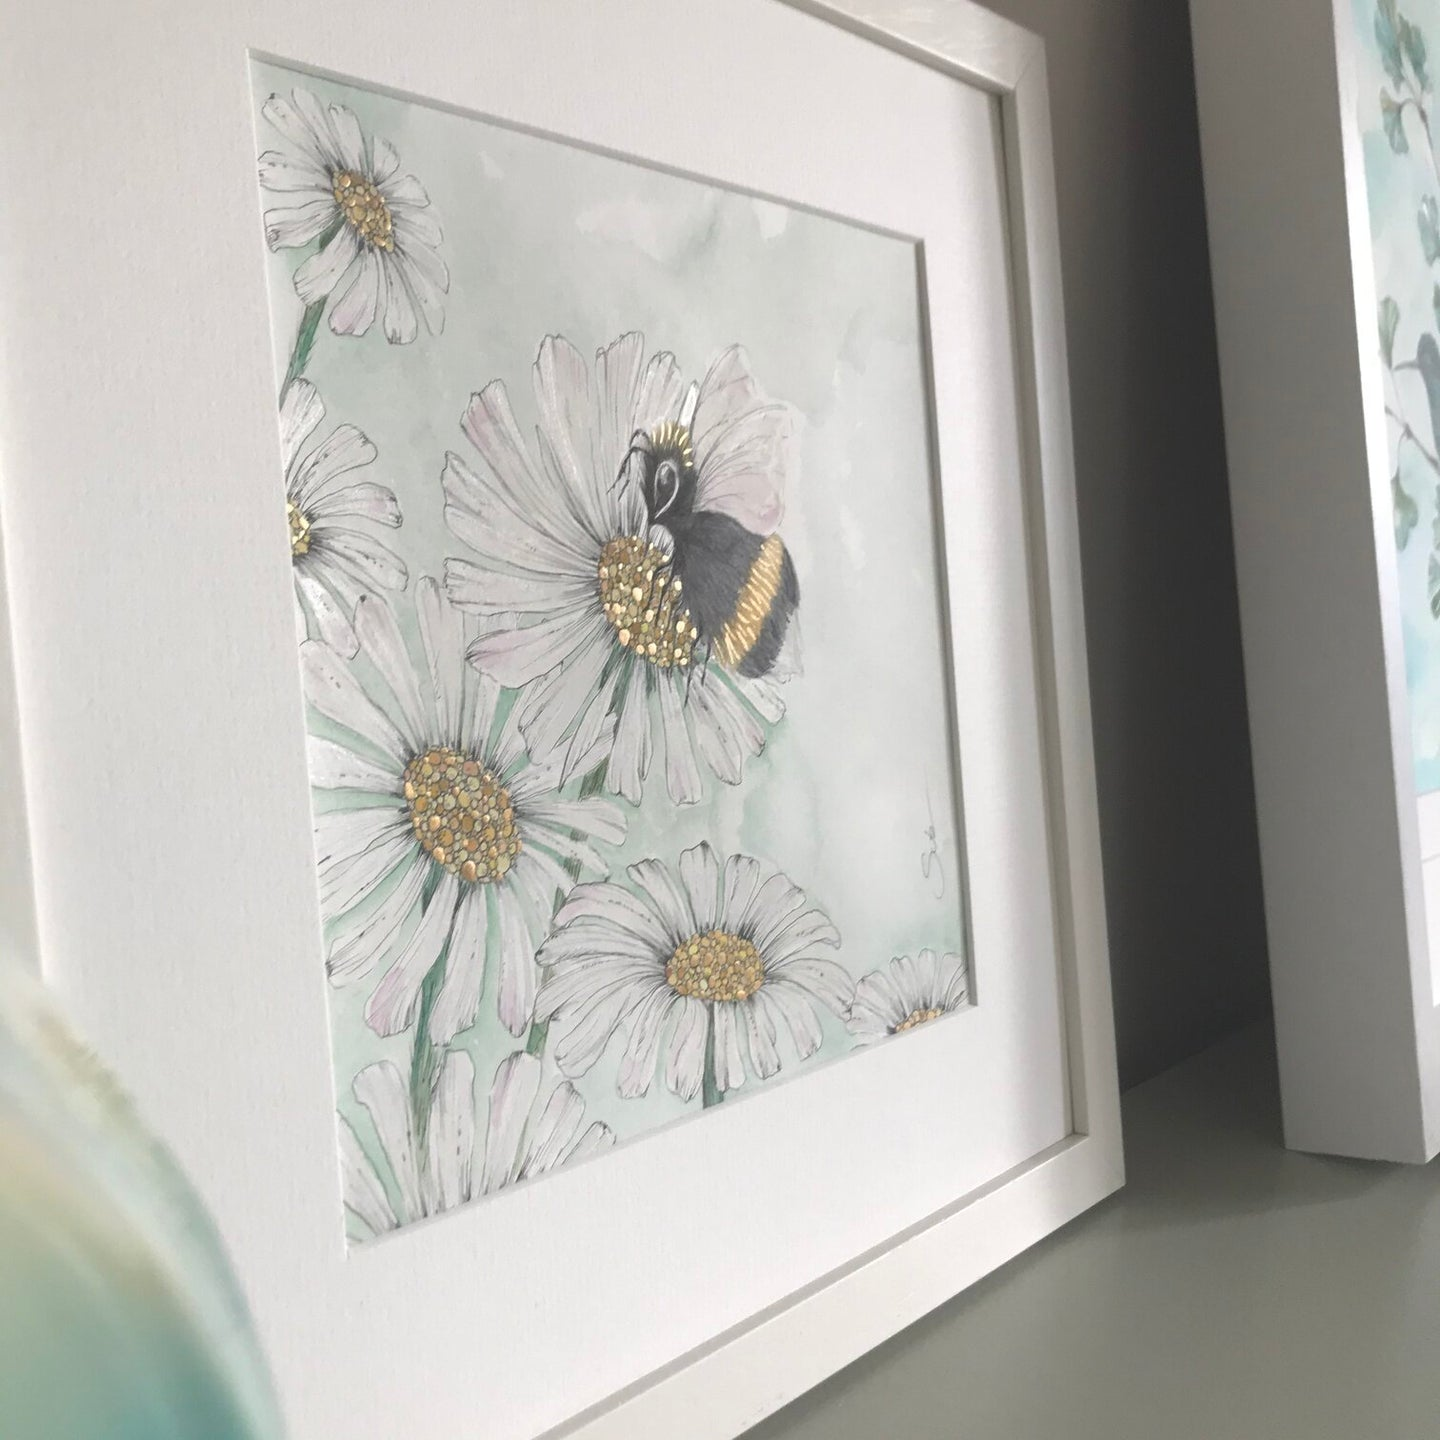 Watercolor Painting of a Bumblebee hovering over a bunch of Daisies with Gold Pollen